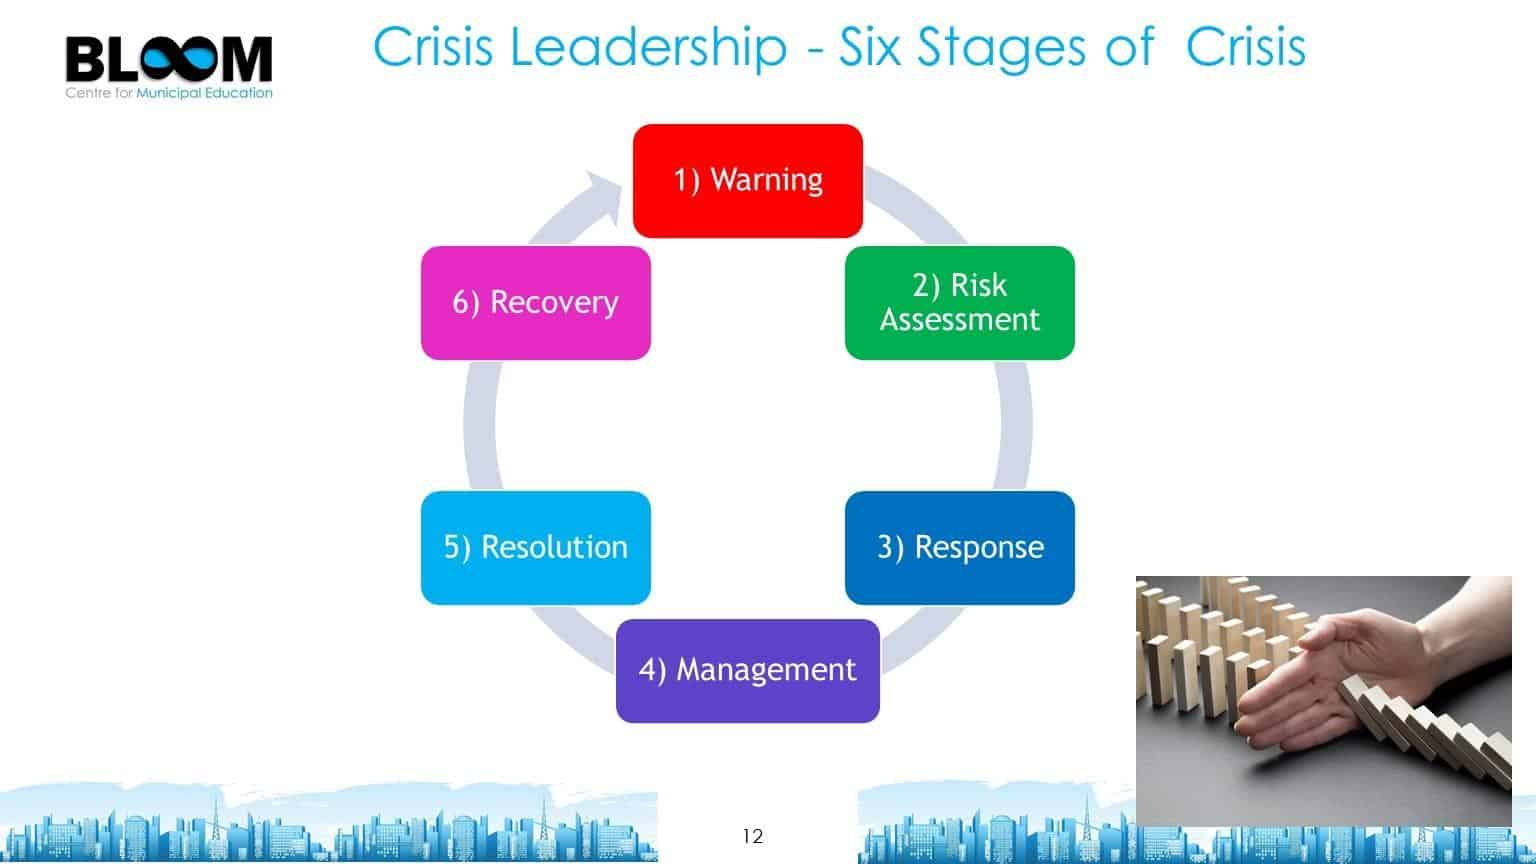 The Six Stages of Crisis